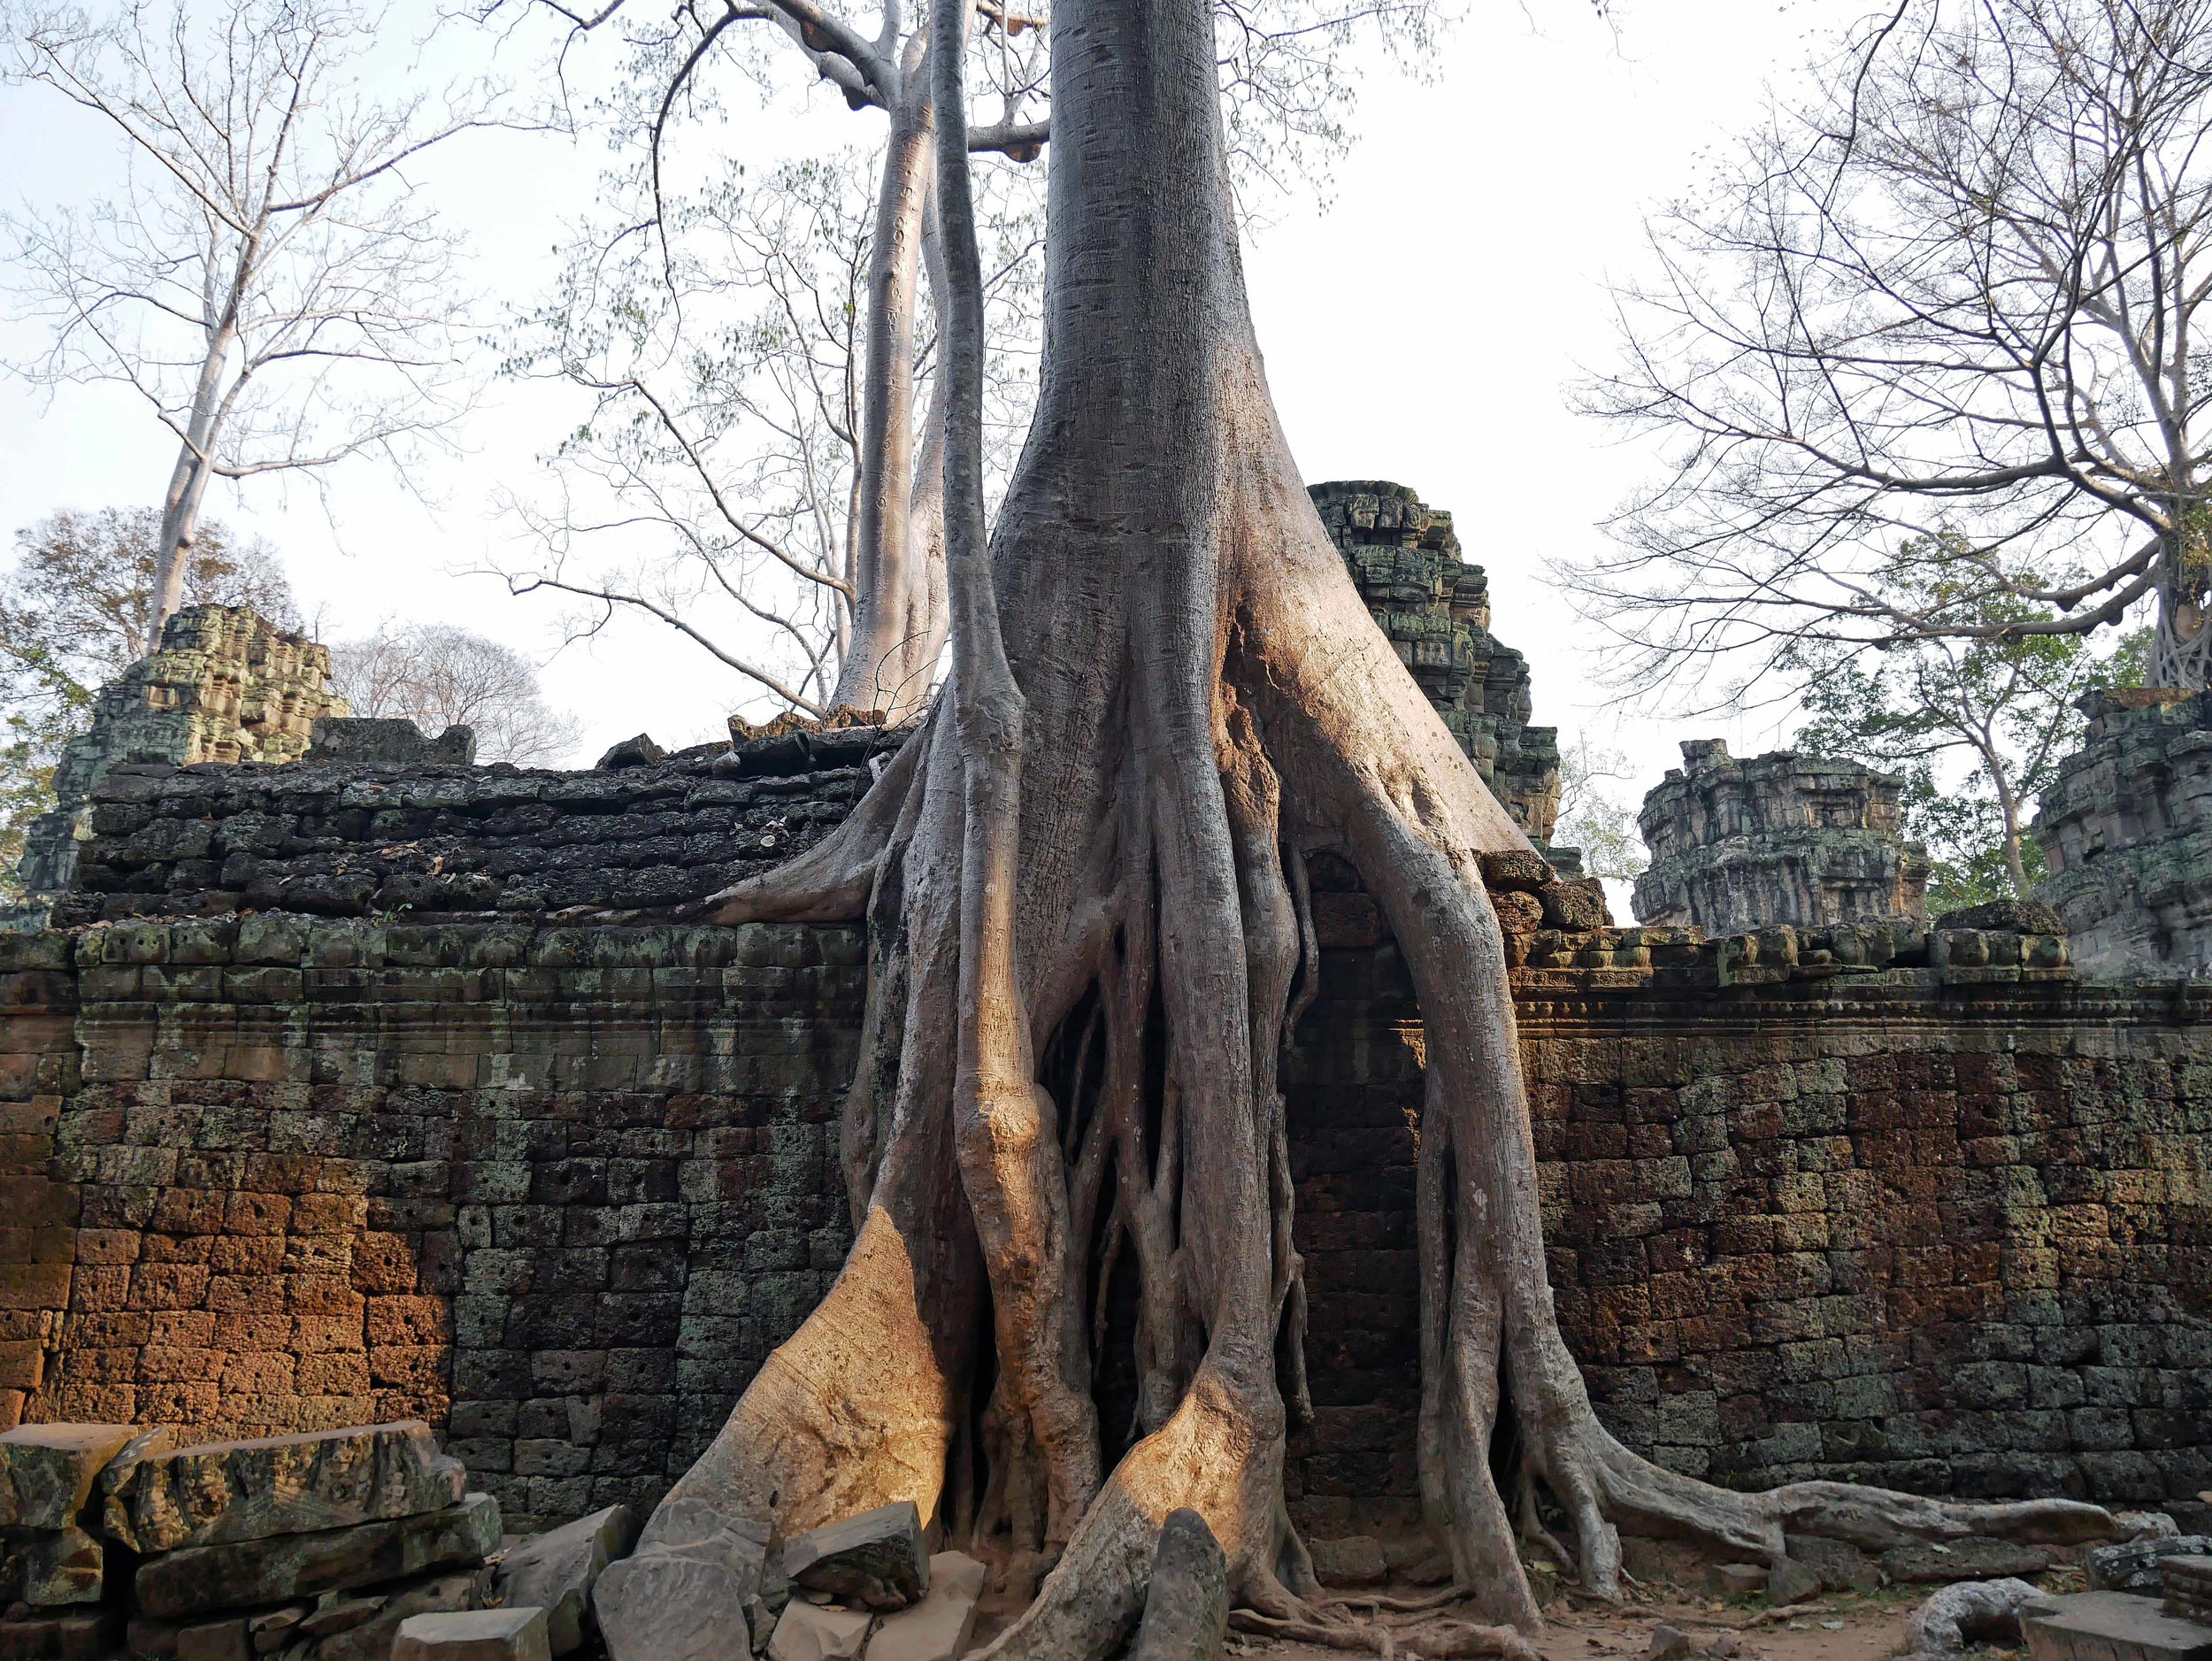 The large trees growing on Ta Prohm are thought to be silk-cotton trees (Feb 27).